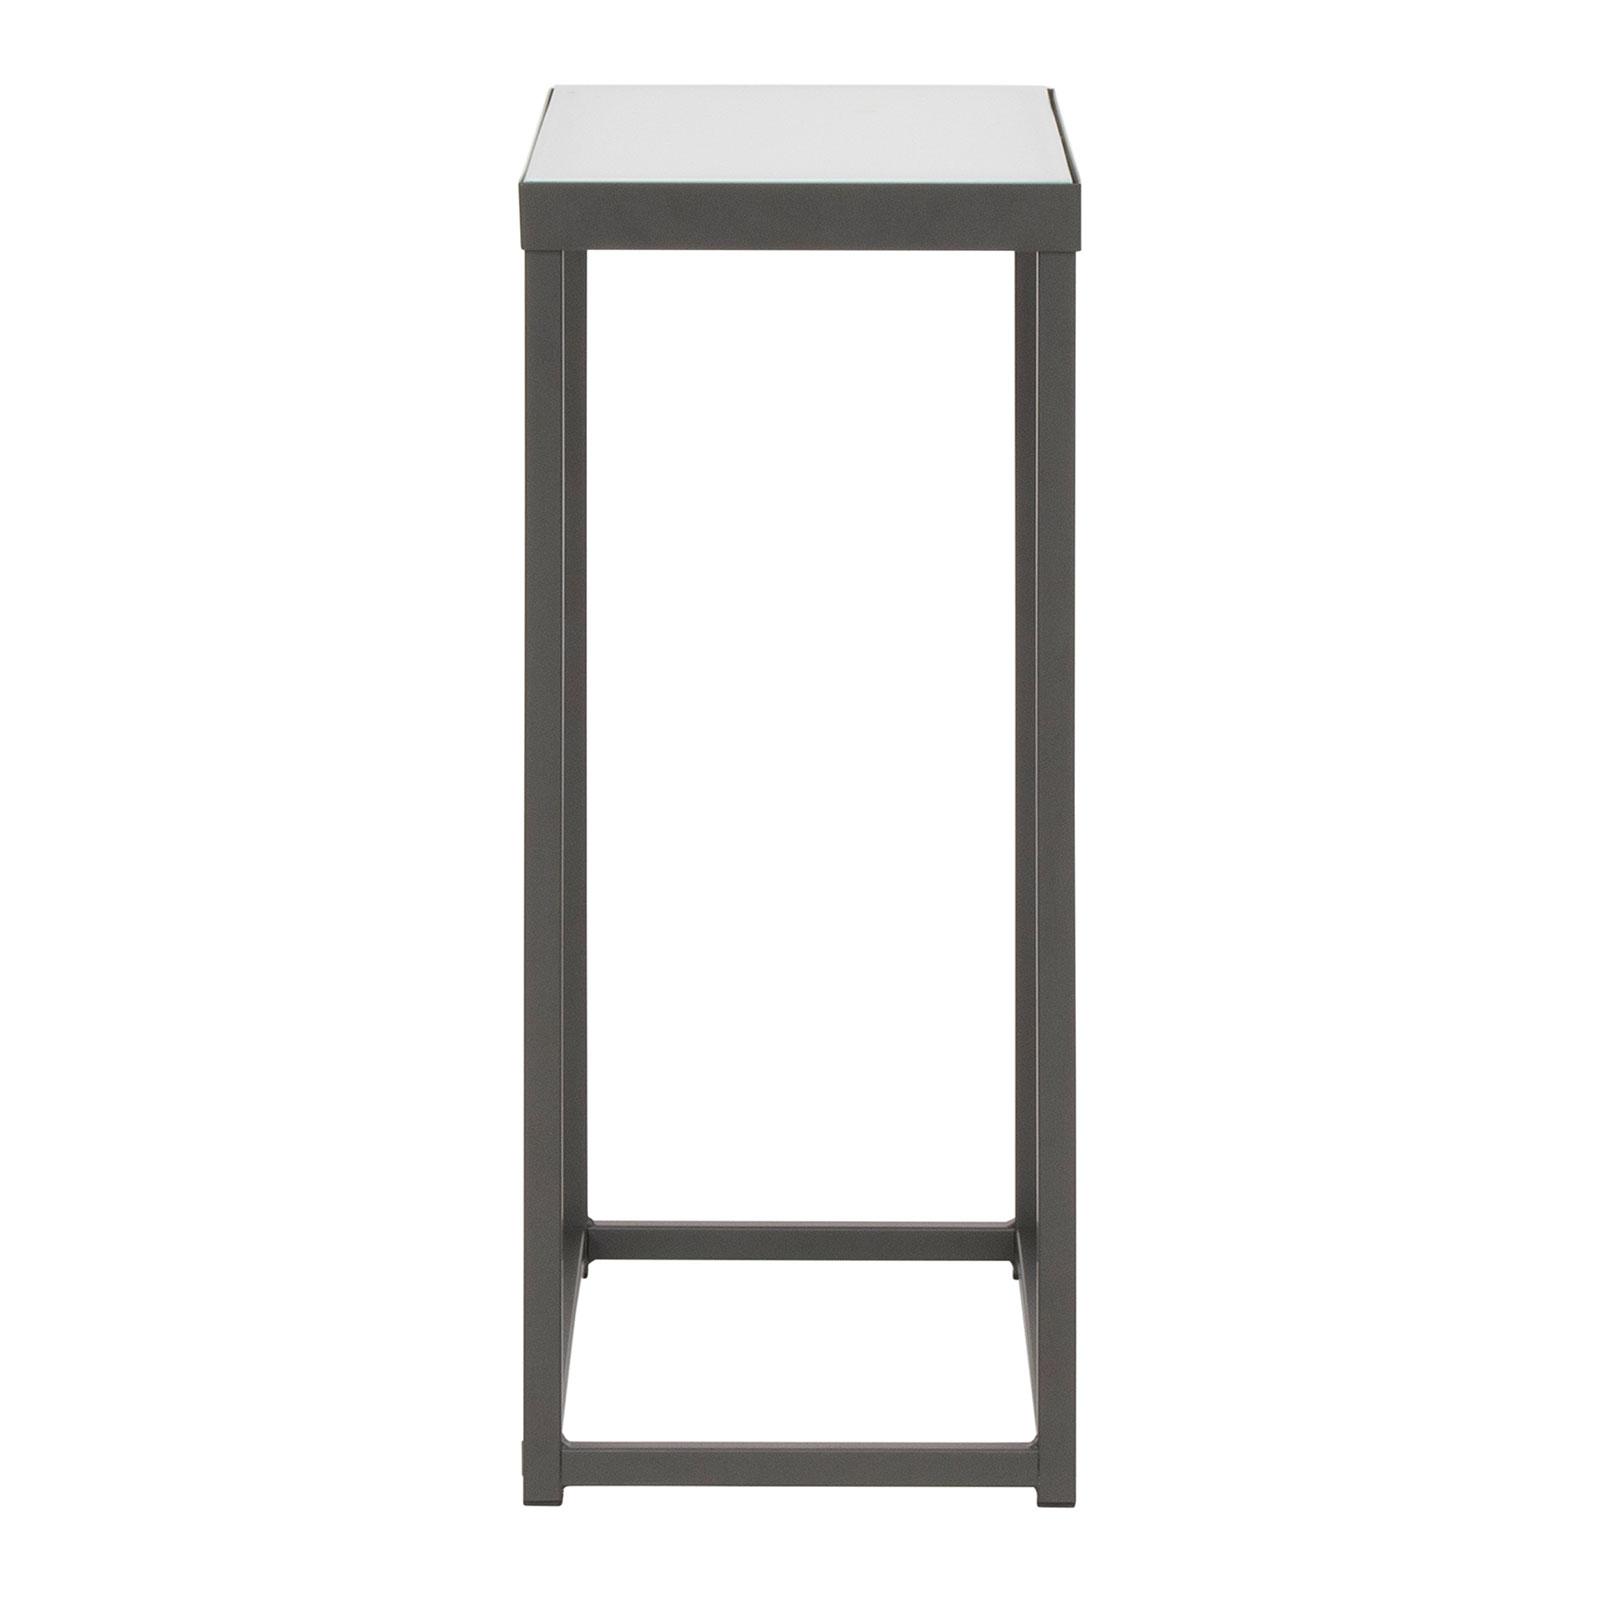 71053-Camber-Side-Table-side